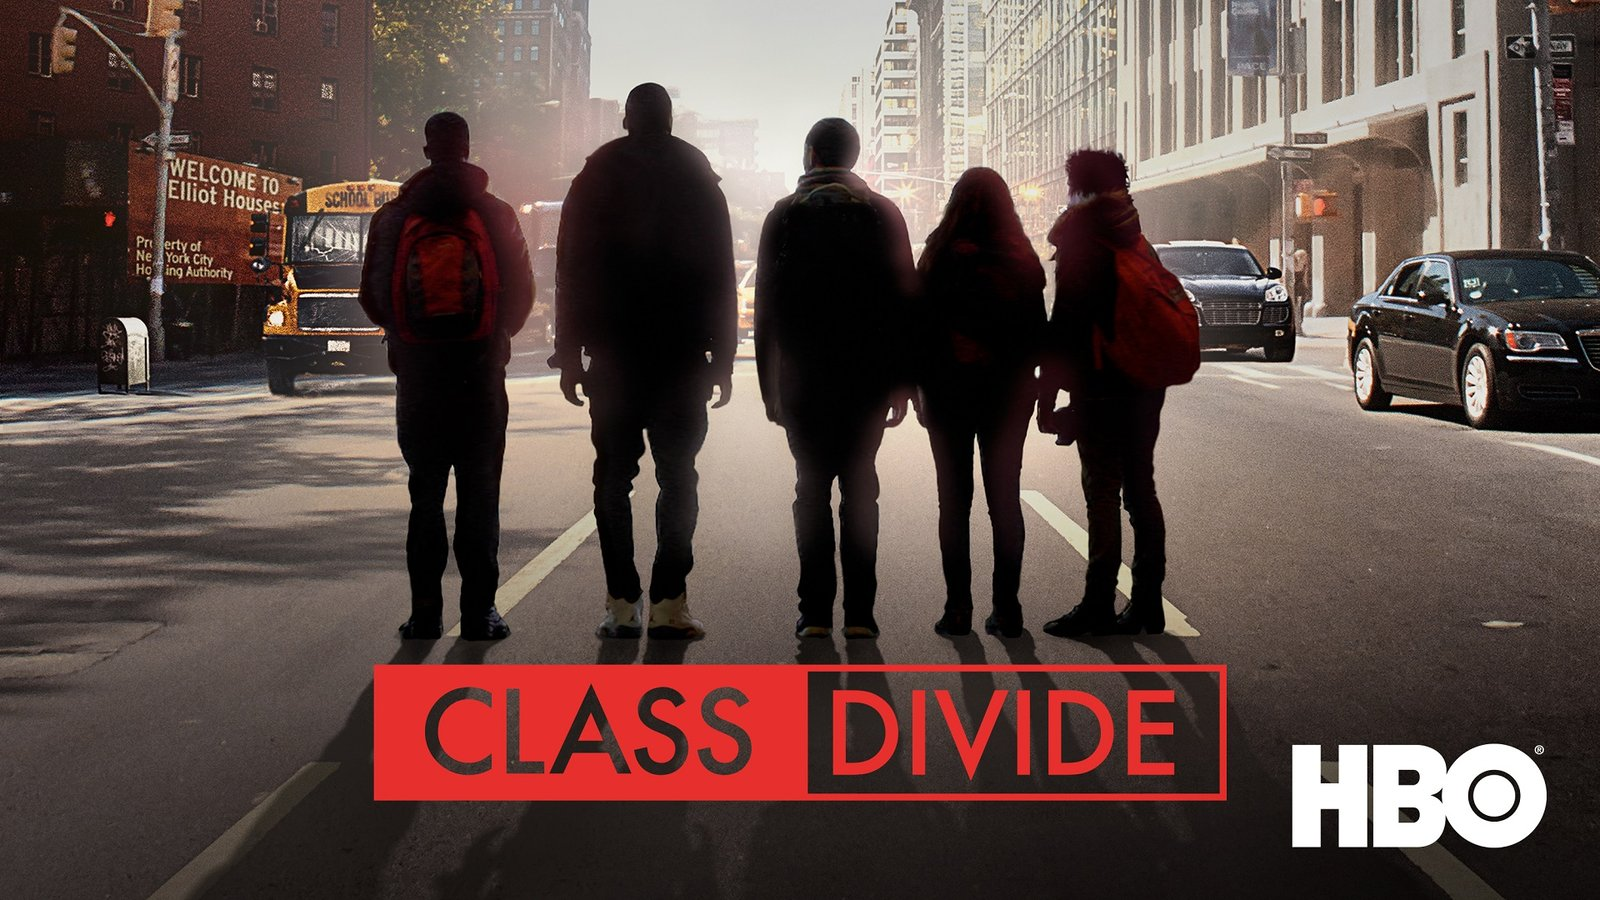 Class Divide - Effects of Gentrification in West Chelsea, NYC